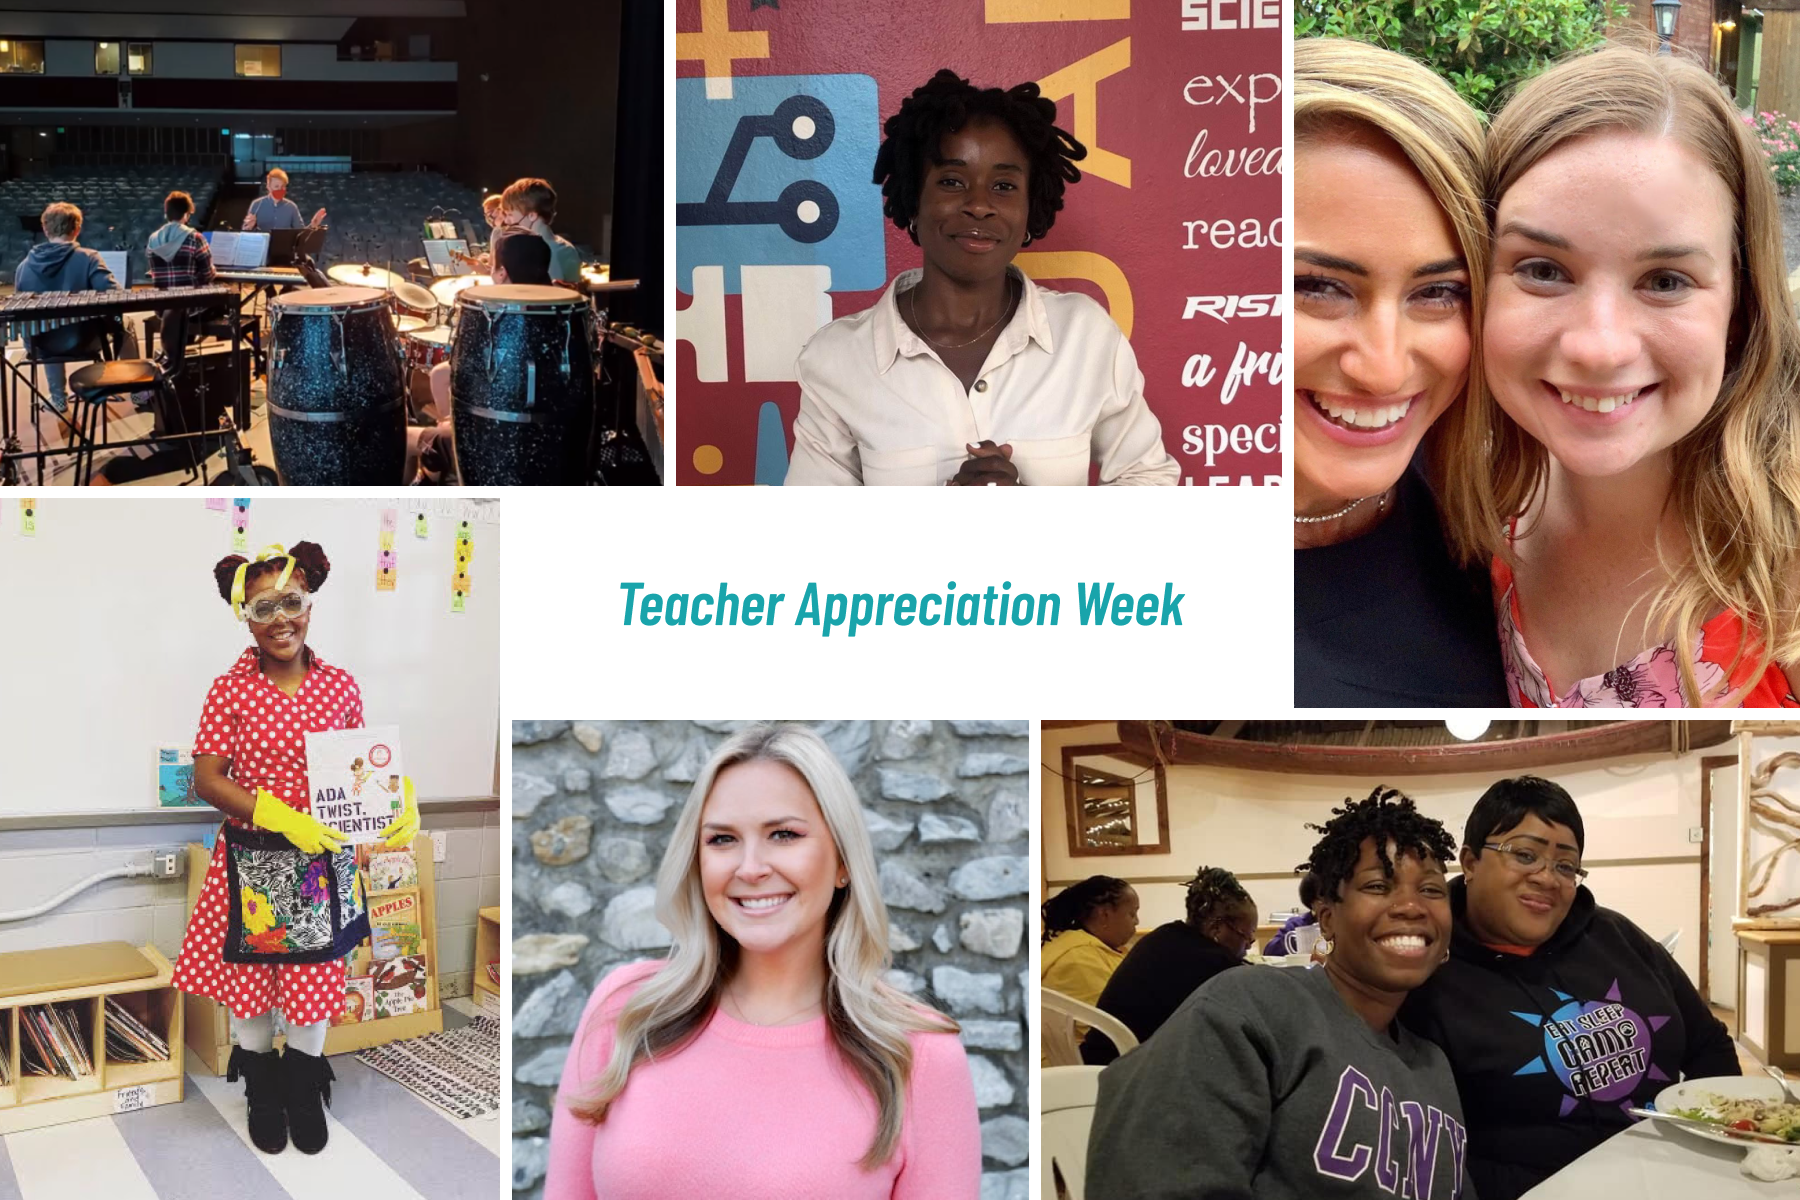 A grid of photos featuring six teachers being celebrated for Teacher Appreciation Week.